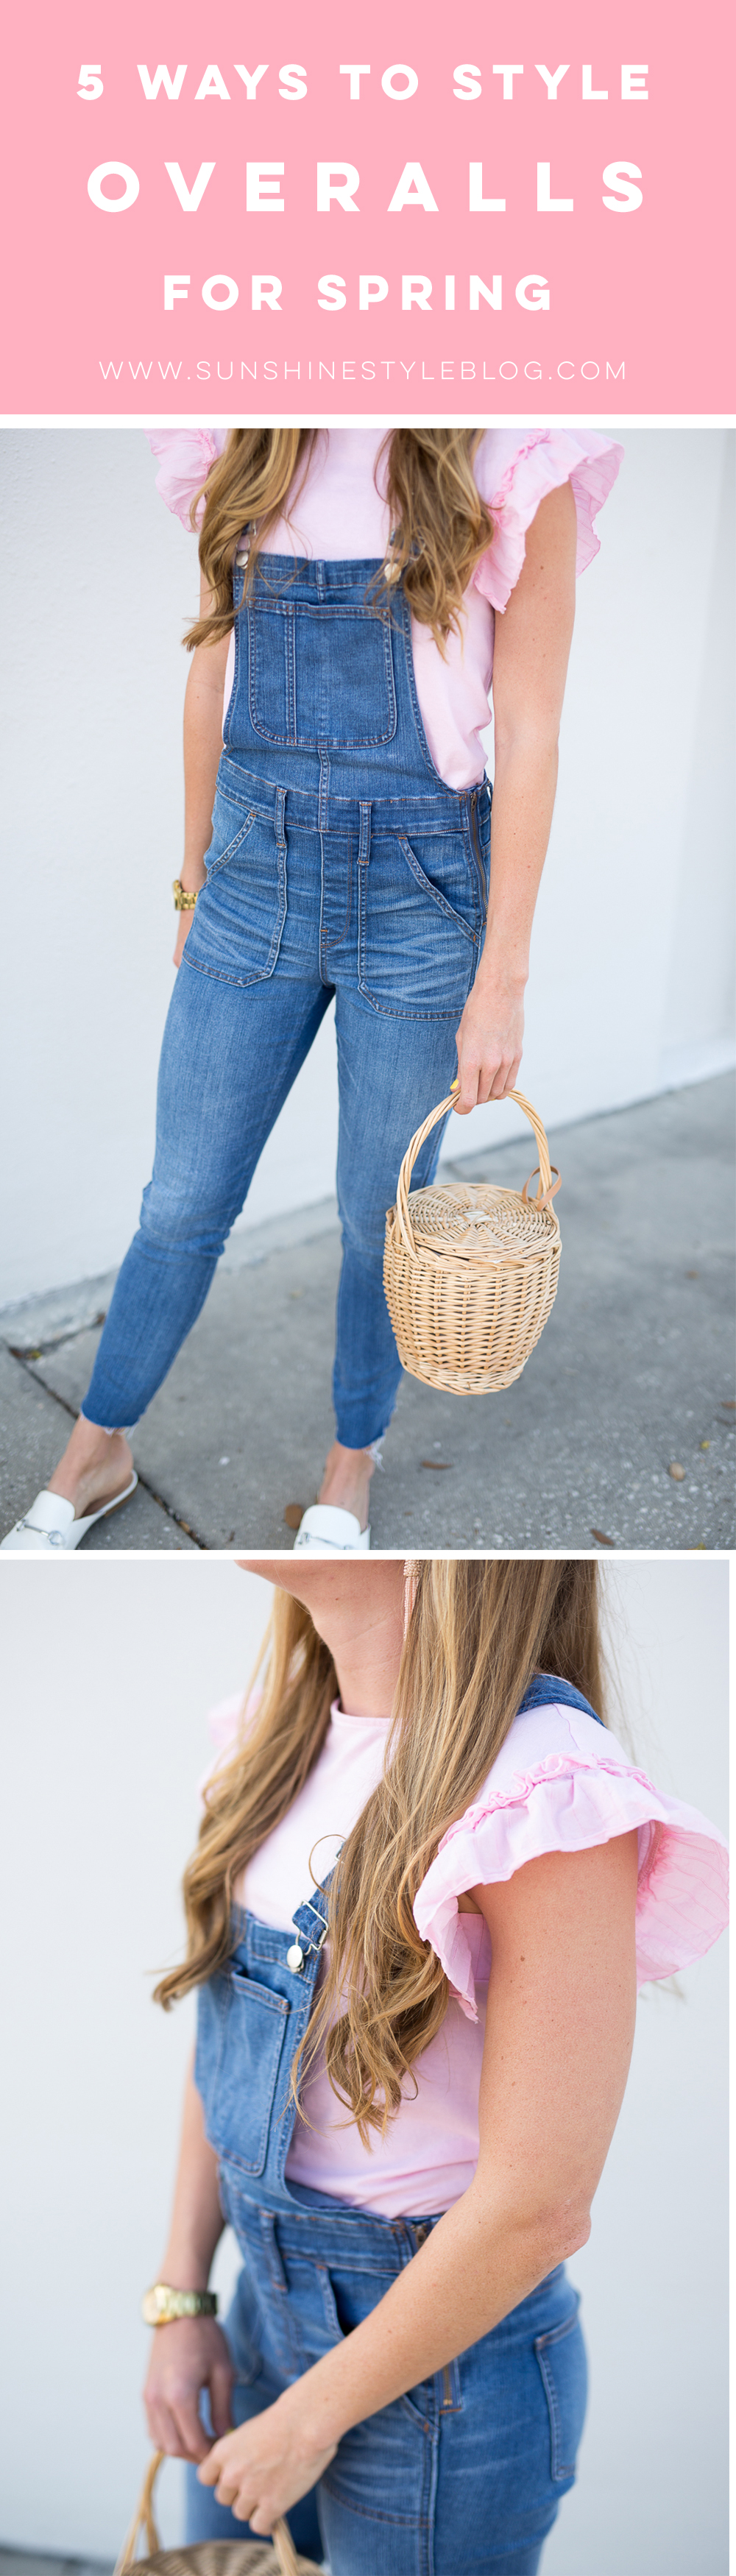 5 Ways to Style Denim Overalls for Spring, Wearing Madewell Overalls, Target Top and Loafers and a Basket Bag - Sunshine Style